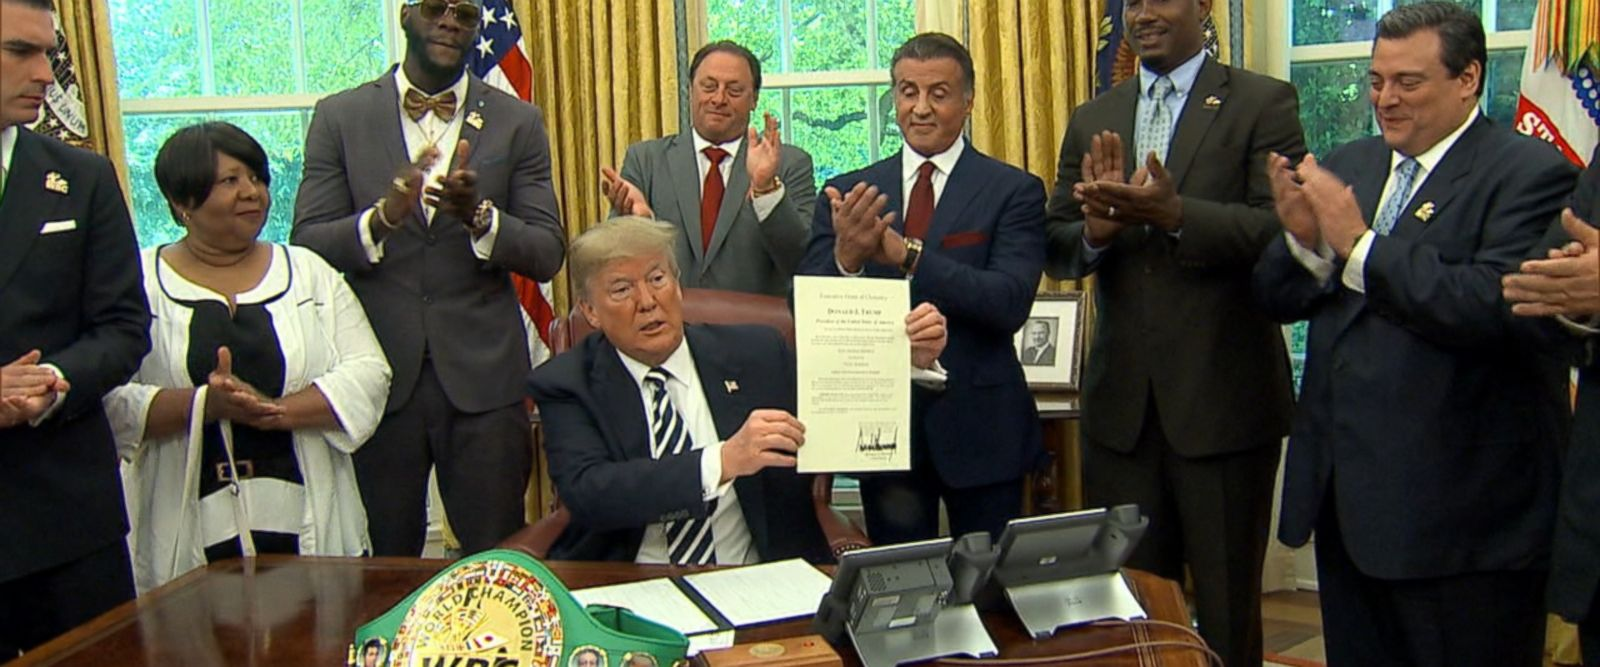 VIDEO: President Trump signed a full posthumous pardon for former heavyweight boxer Jack Johnson in a surprise Oval Office ceremony alongside actor Sylvester Stallone.